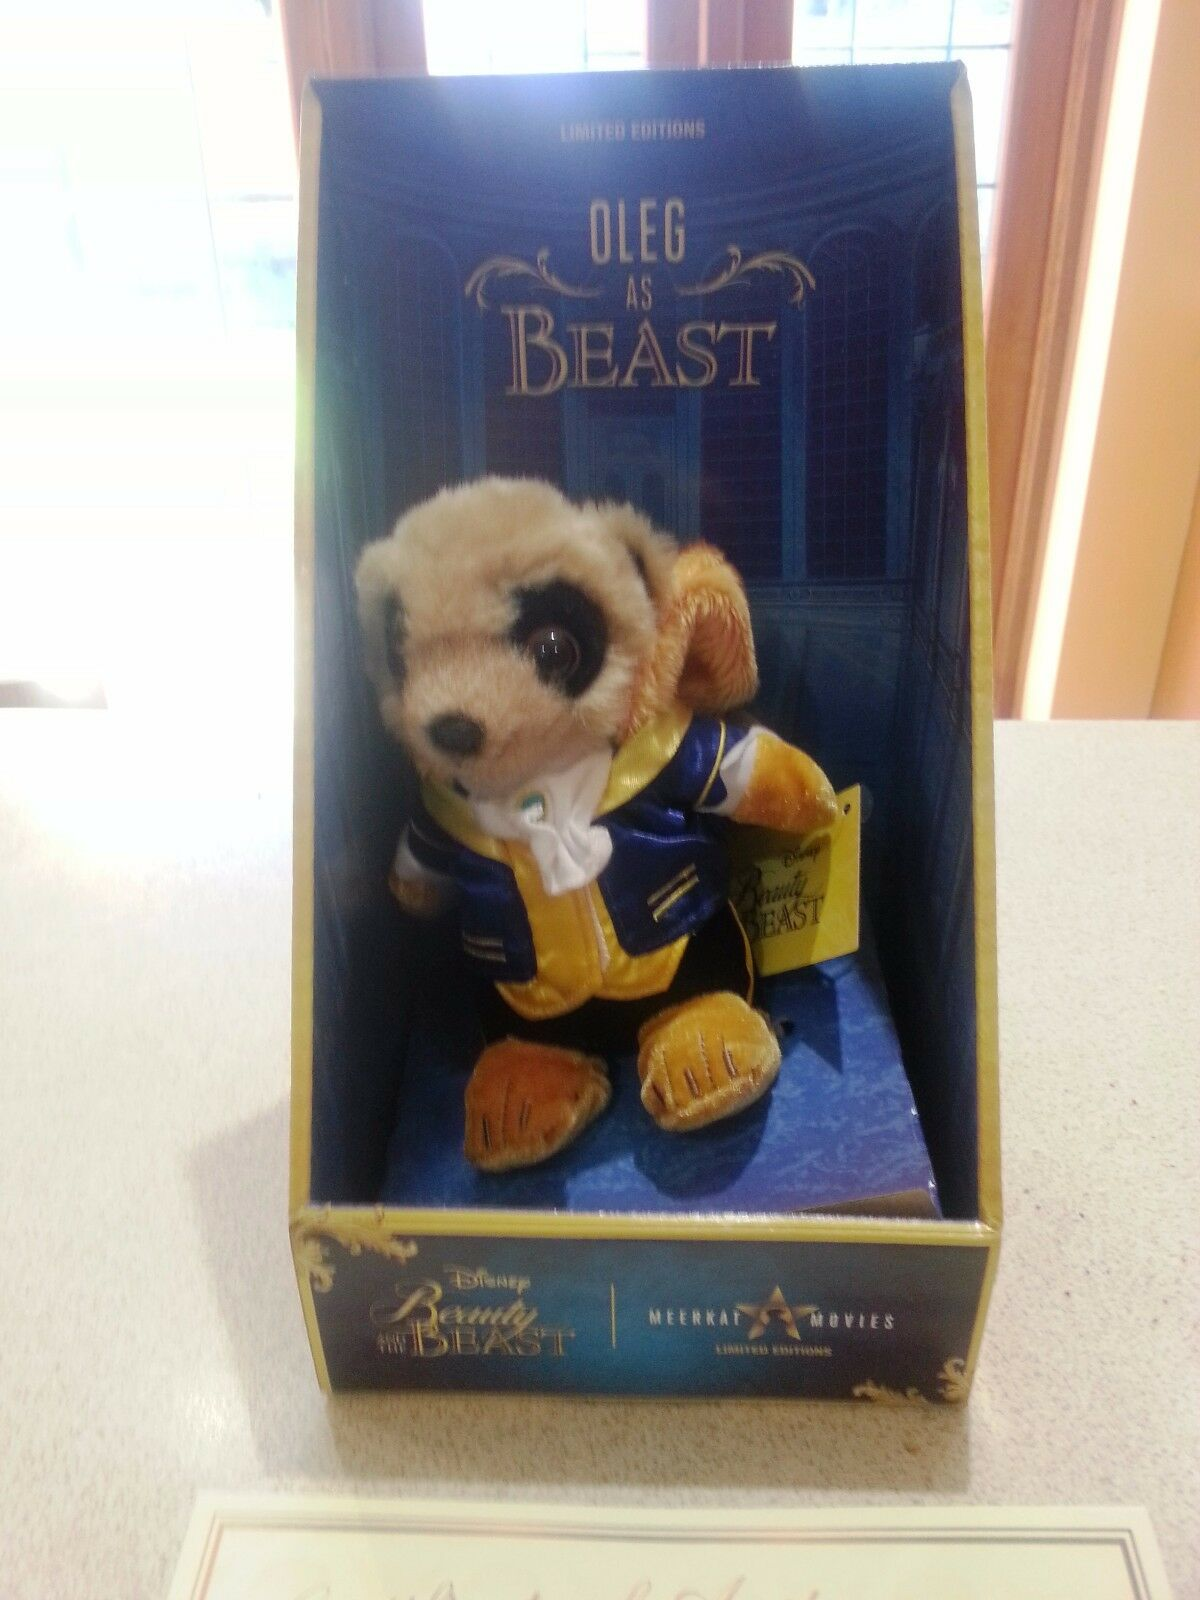 OLEG AS BEAST Compare the Meerkat Limited Edition Toy Brand New P&P INCL